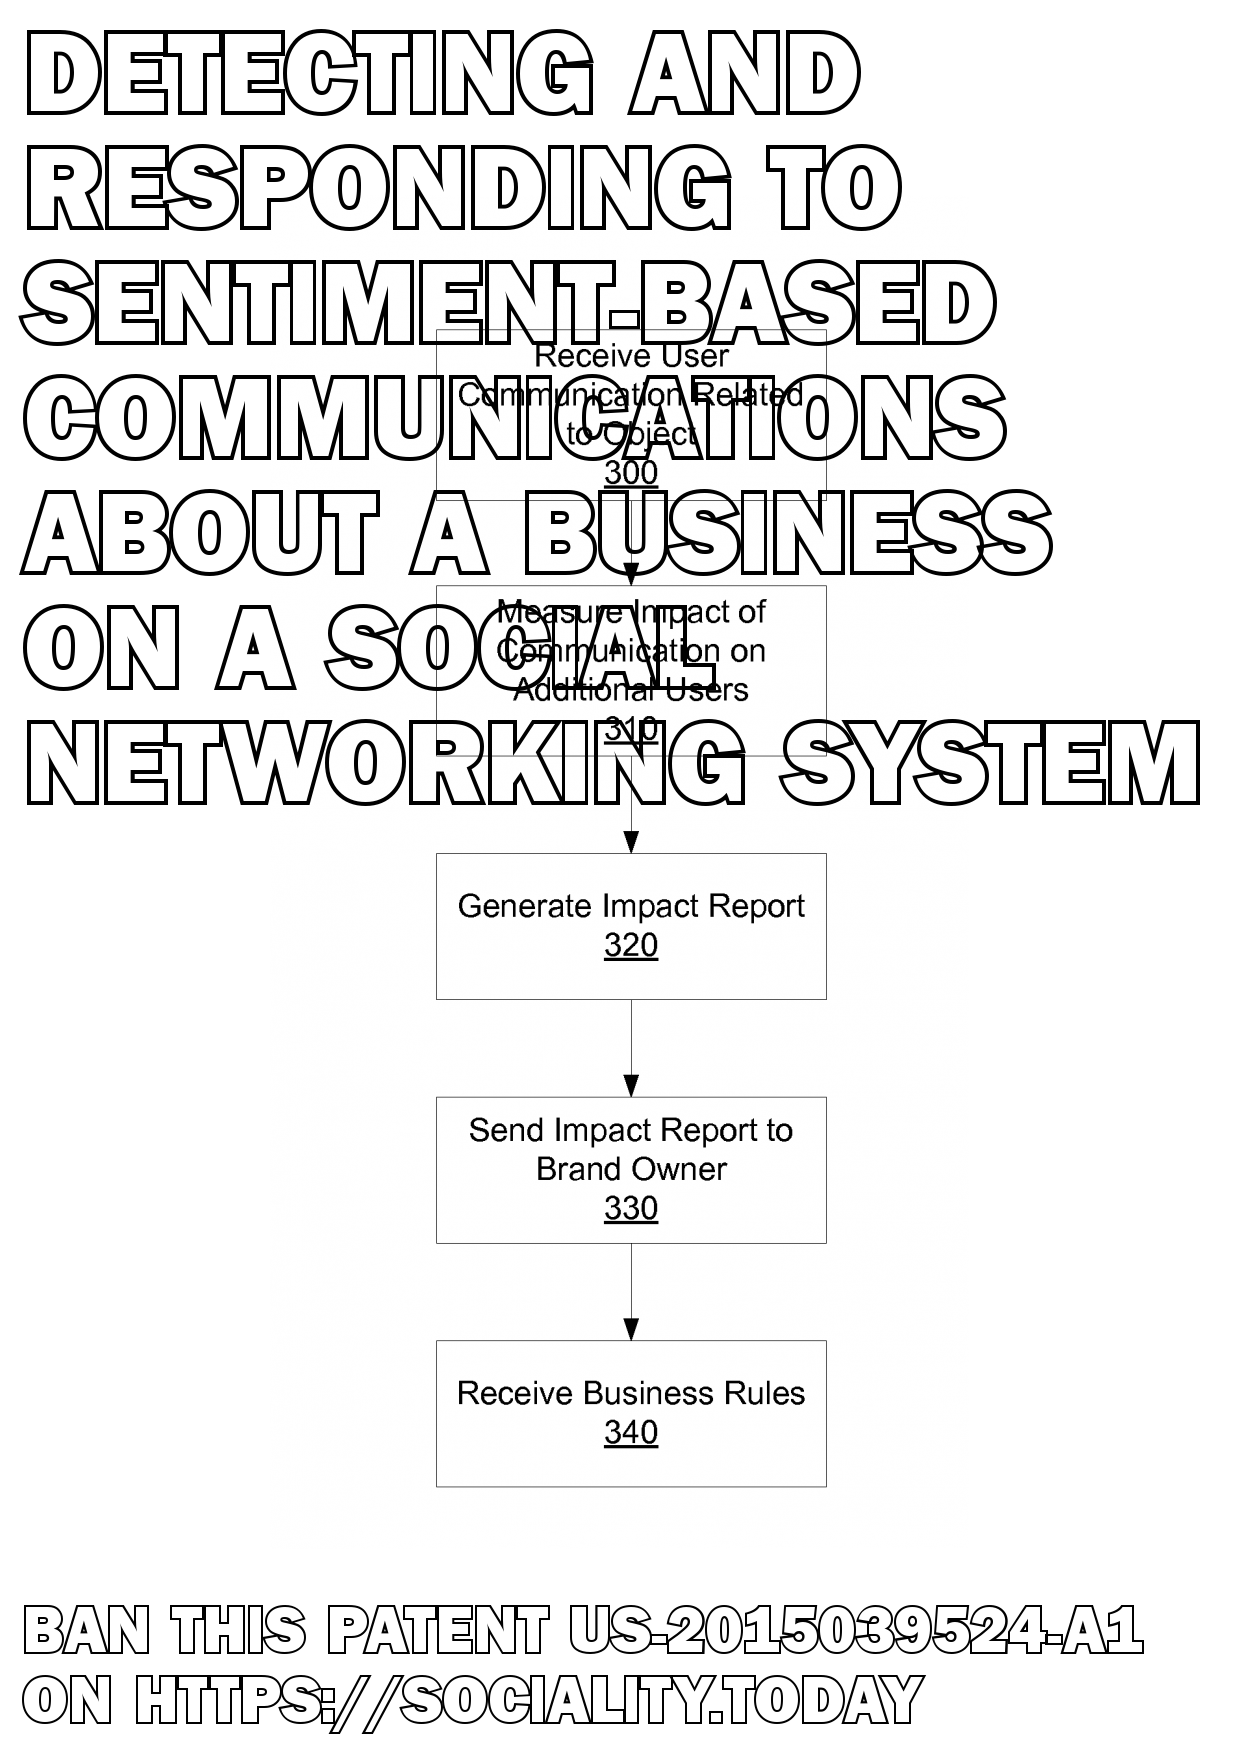 Detecting And Responding To Sentiment-Based Communications About A Business On A Social Networking System  - US-2015039524-A1